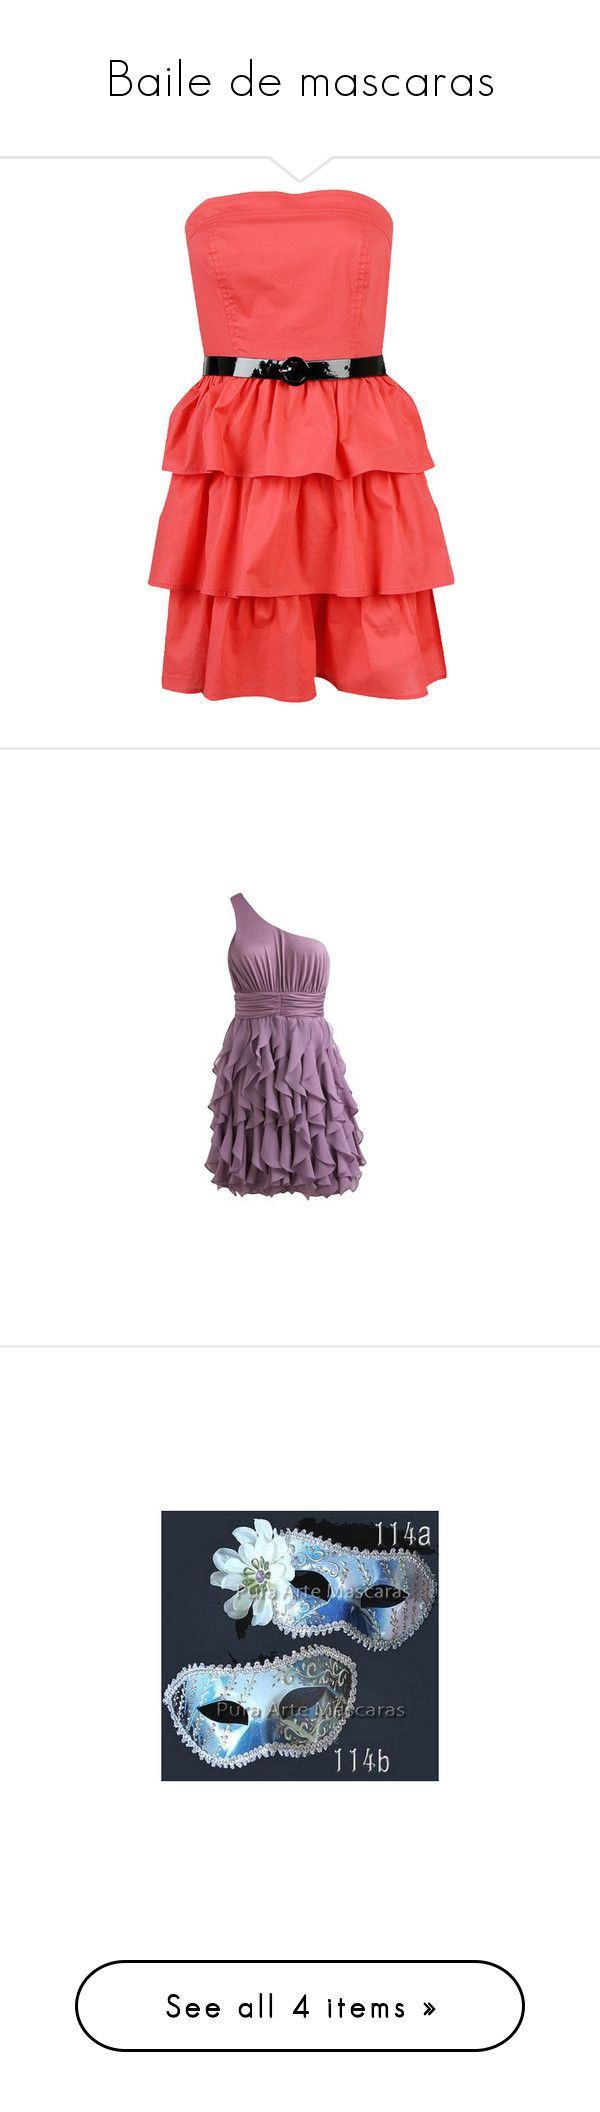 """Baile de mascaras"" by amaya-perez ❤ liked on Polyvore featuring dresses, vestidos, coral, haljine, dressy, short strapless dresses, sexy cocktail dresses, red strapless cocktail dress, sexy short cocktail dresses and red cocktail dress"